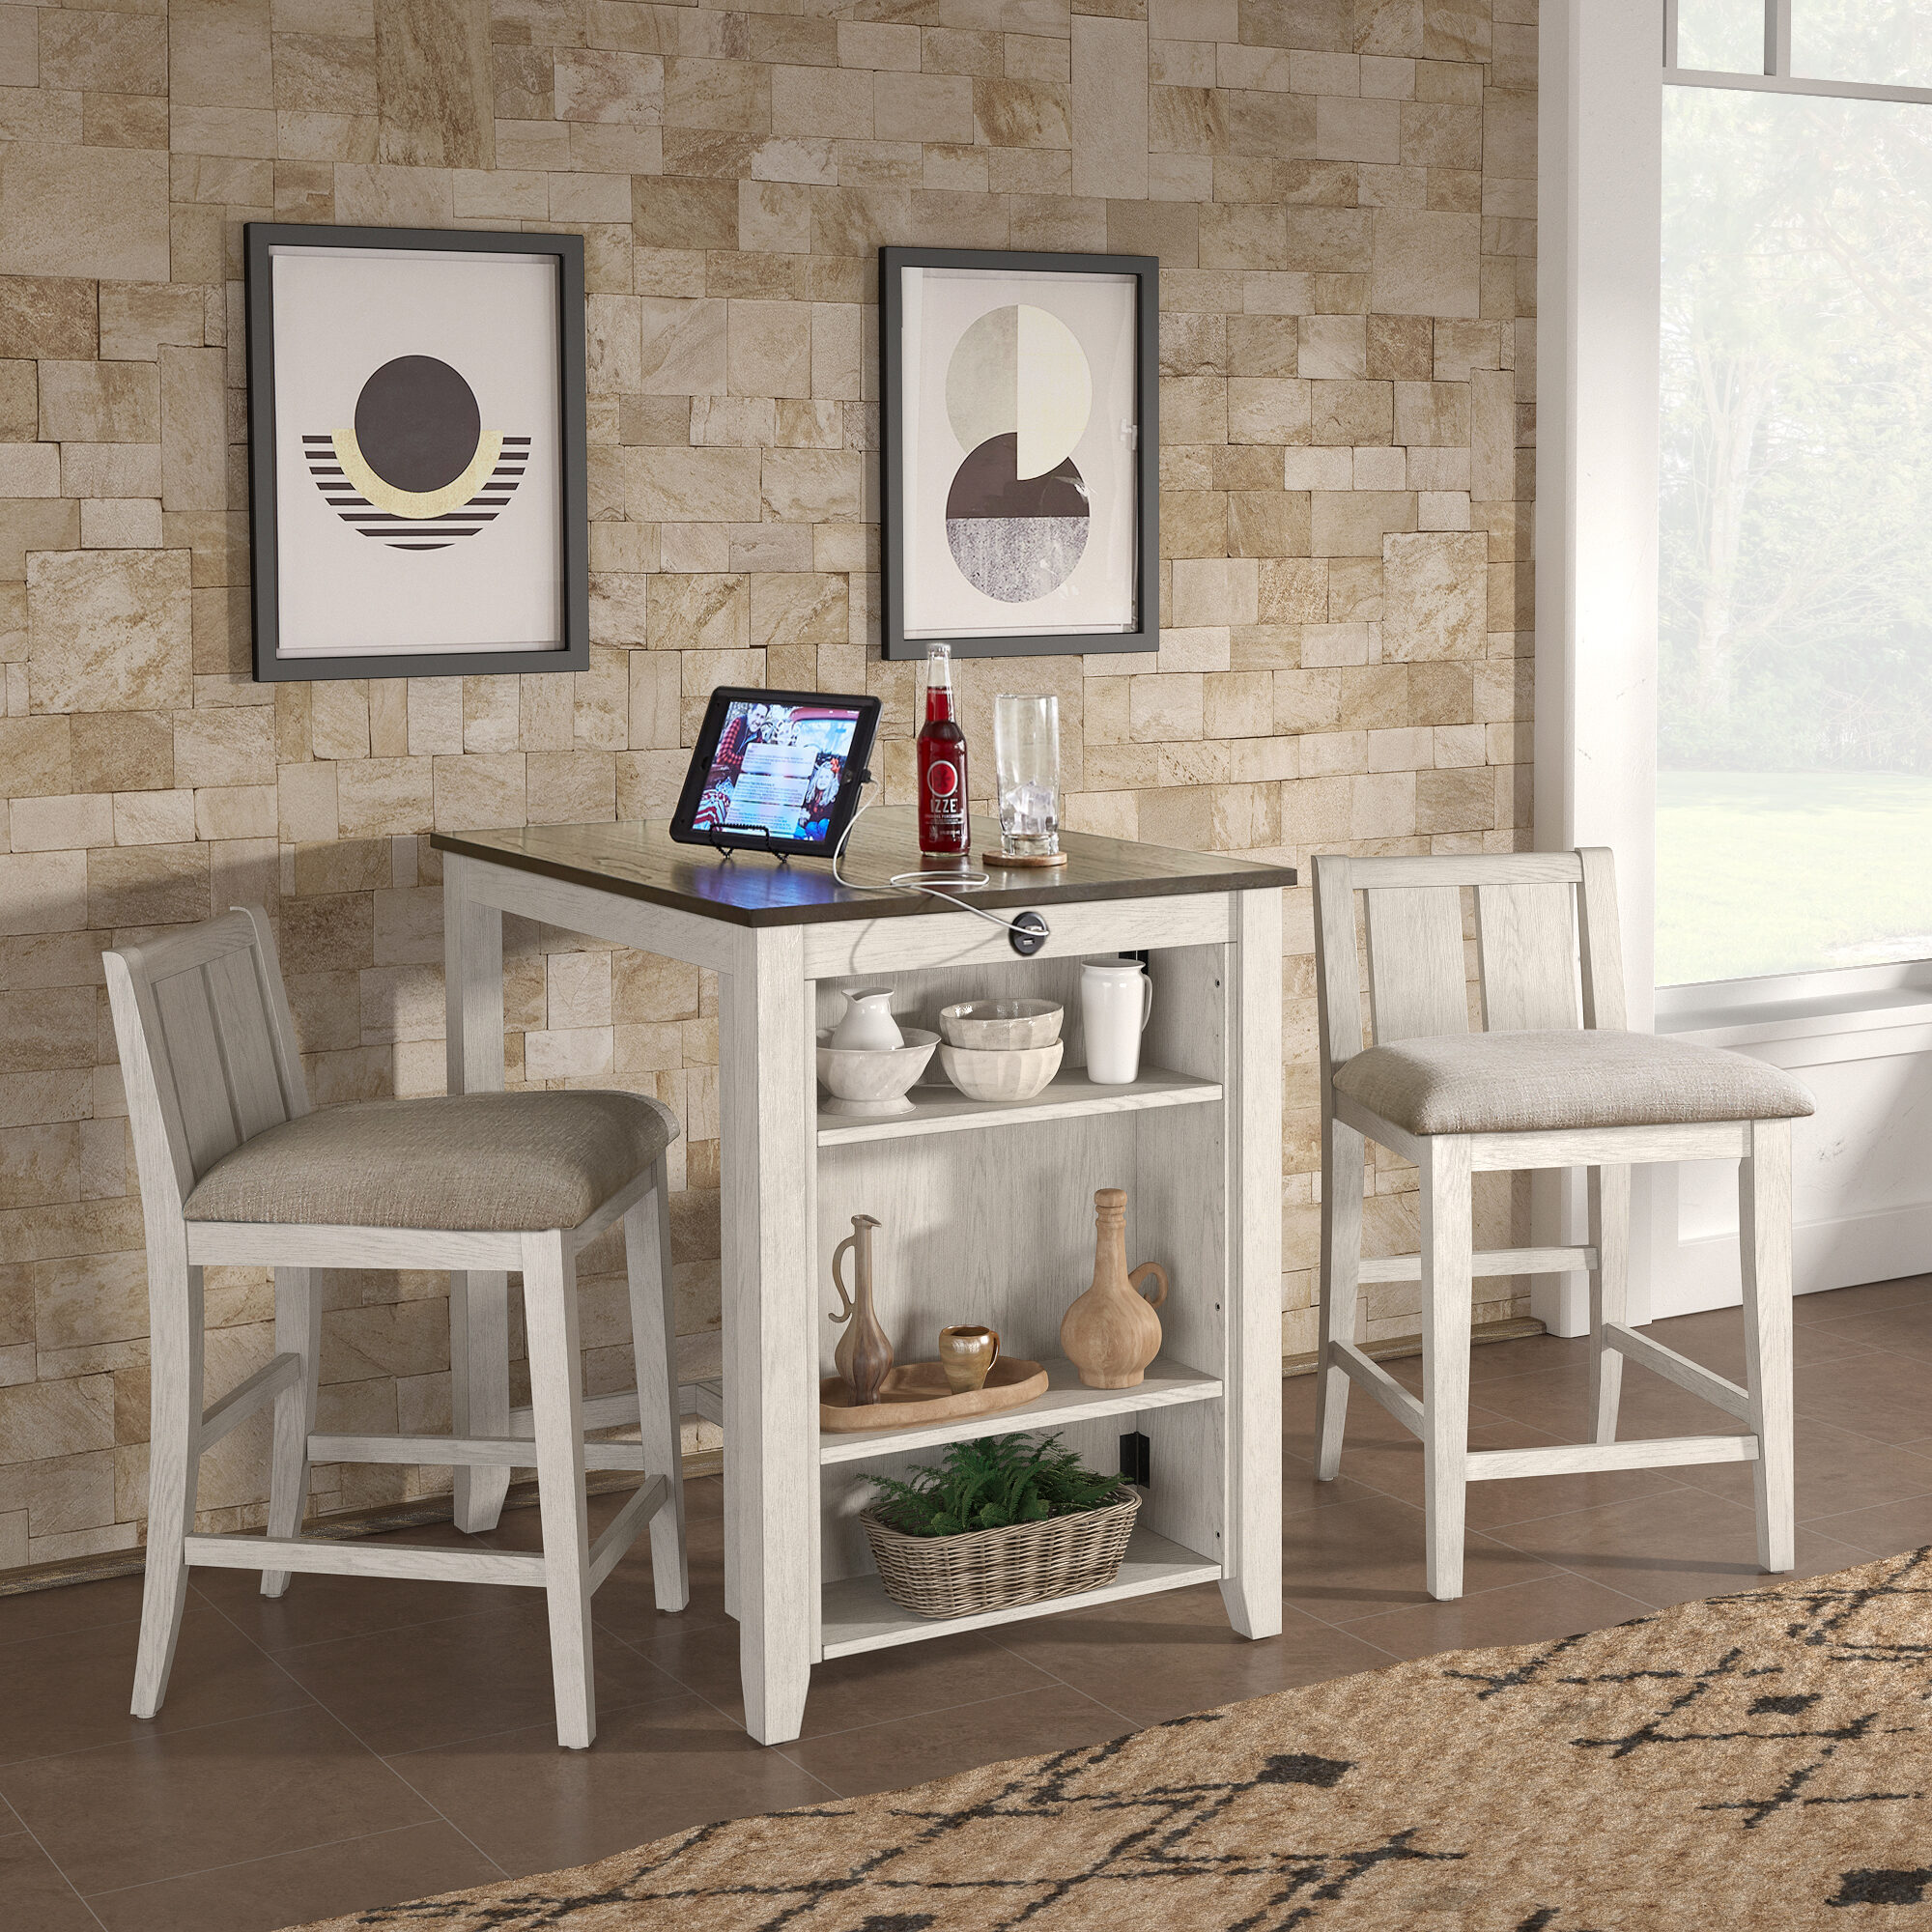 Not everyone has room for a kitchen island in their home, so dining sets like our Beck Counter Height 3-Piece Dining Set with USB Charging Station by iNSPIRE Q Classic is perfect for those tight spaces. This one pictured has a two-tone finish, with a dark cherry table top and distressed white finish on the table's base and the chair frames.